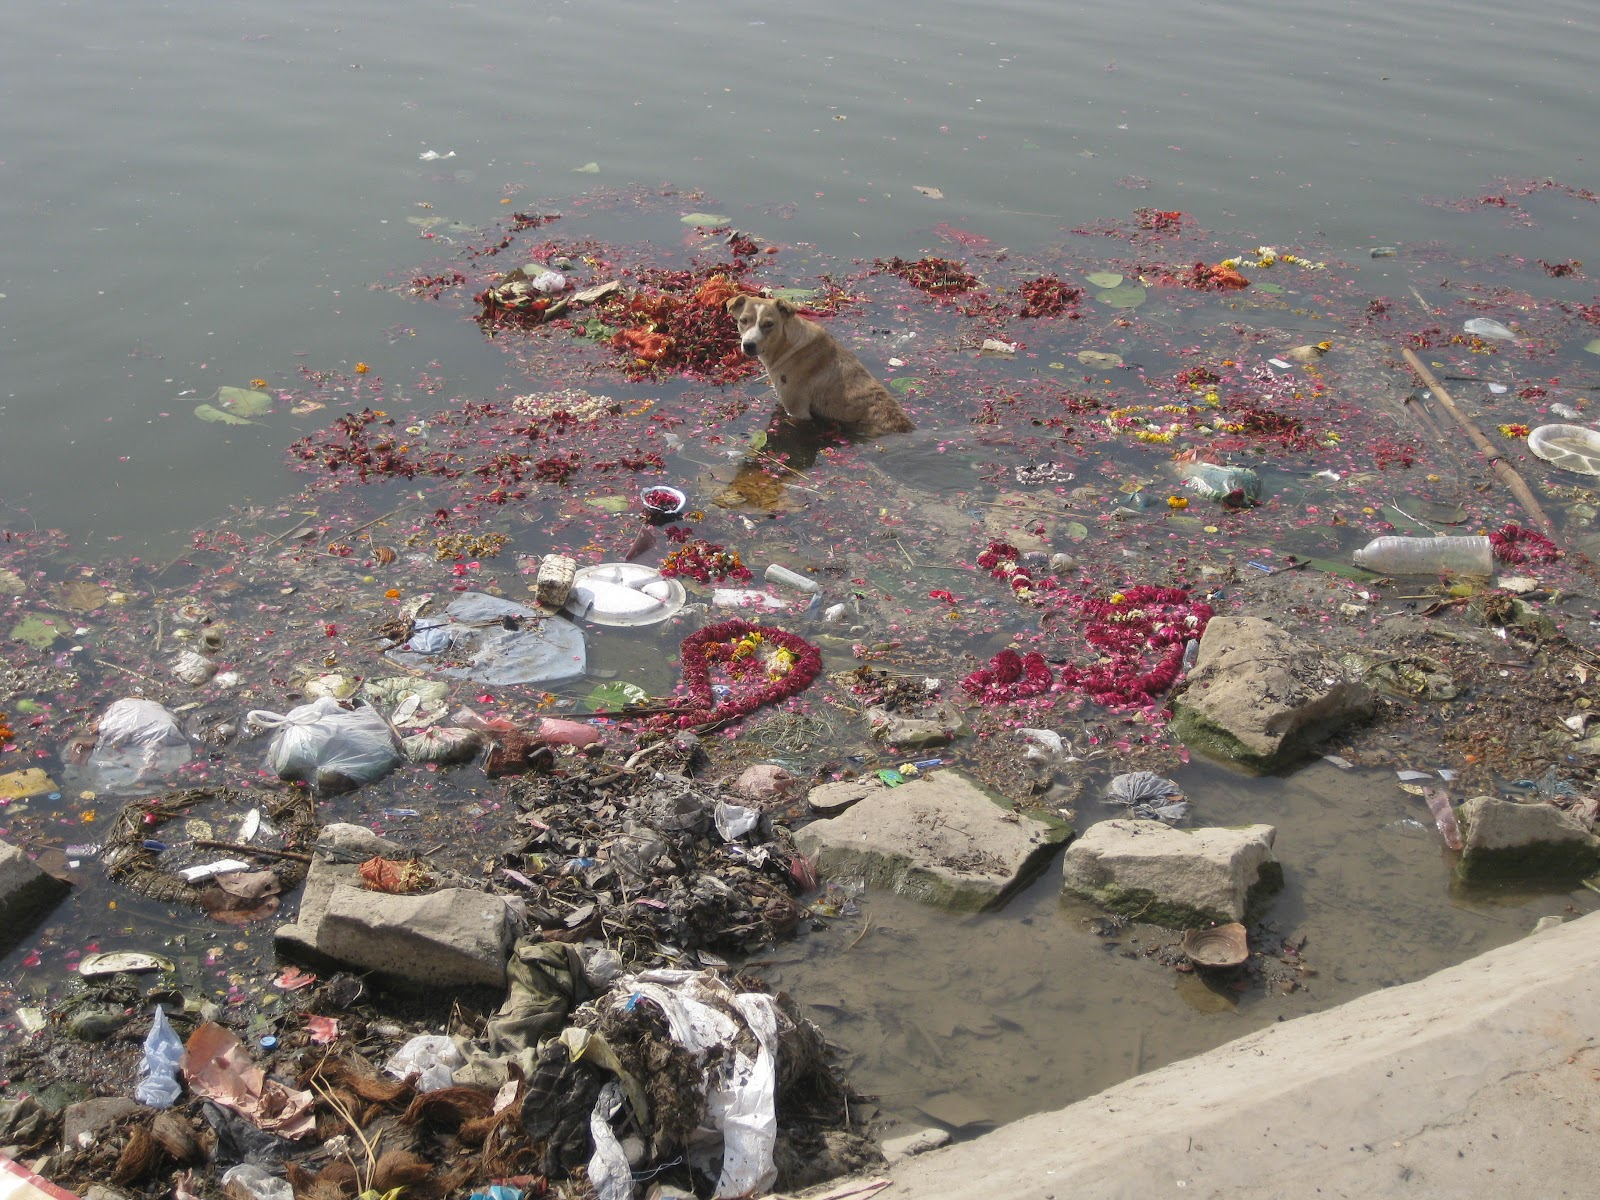 ganges river pollution essay View this essay on pollution on the ganges ganges is the sacred river of india and this country's history and traditions are closely linked to it it is important.